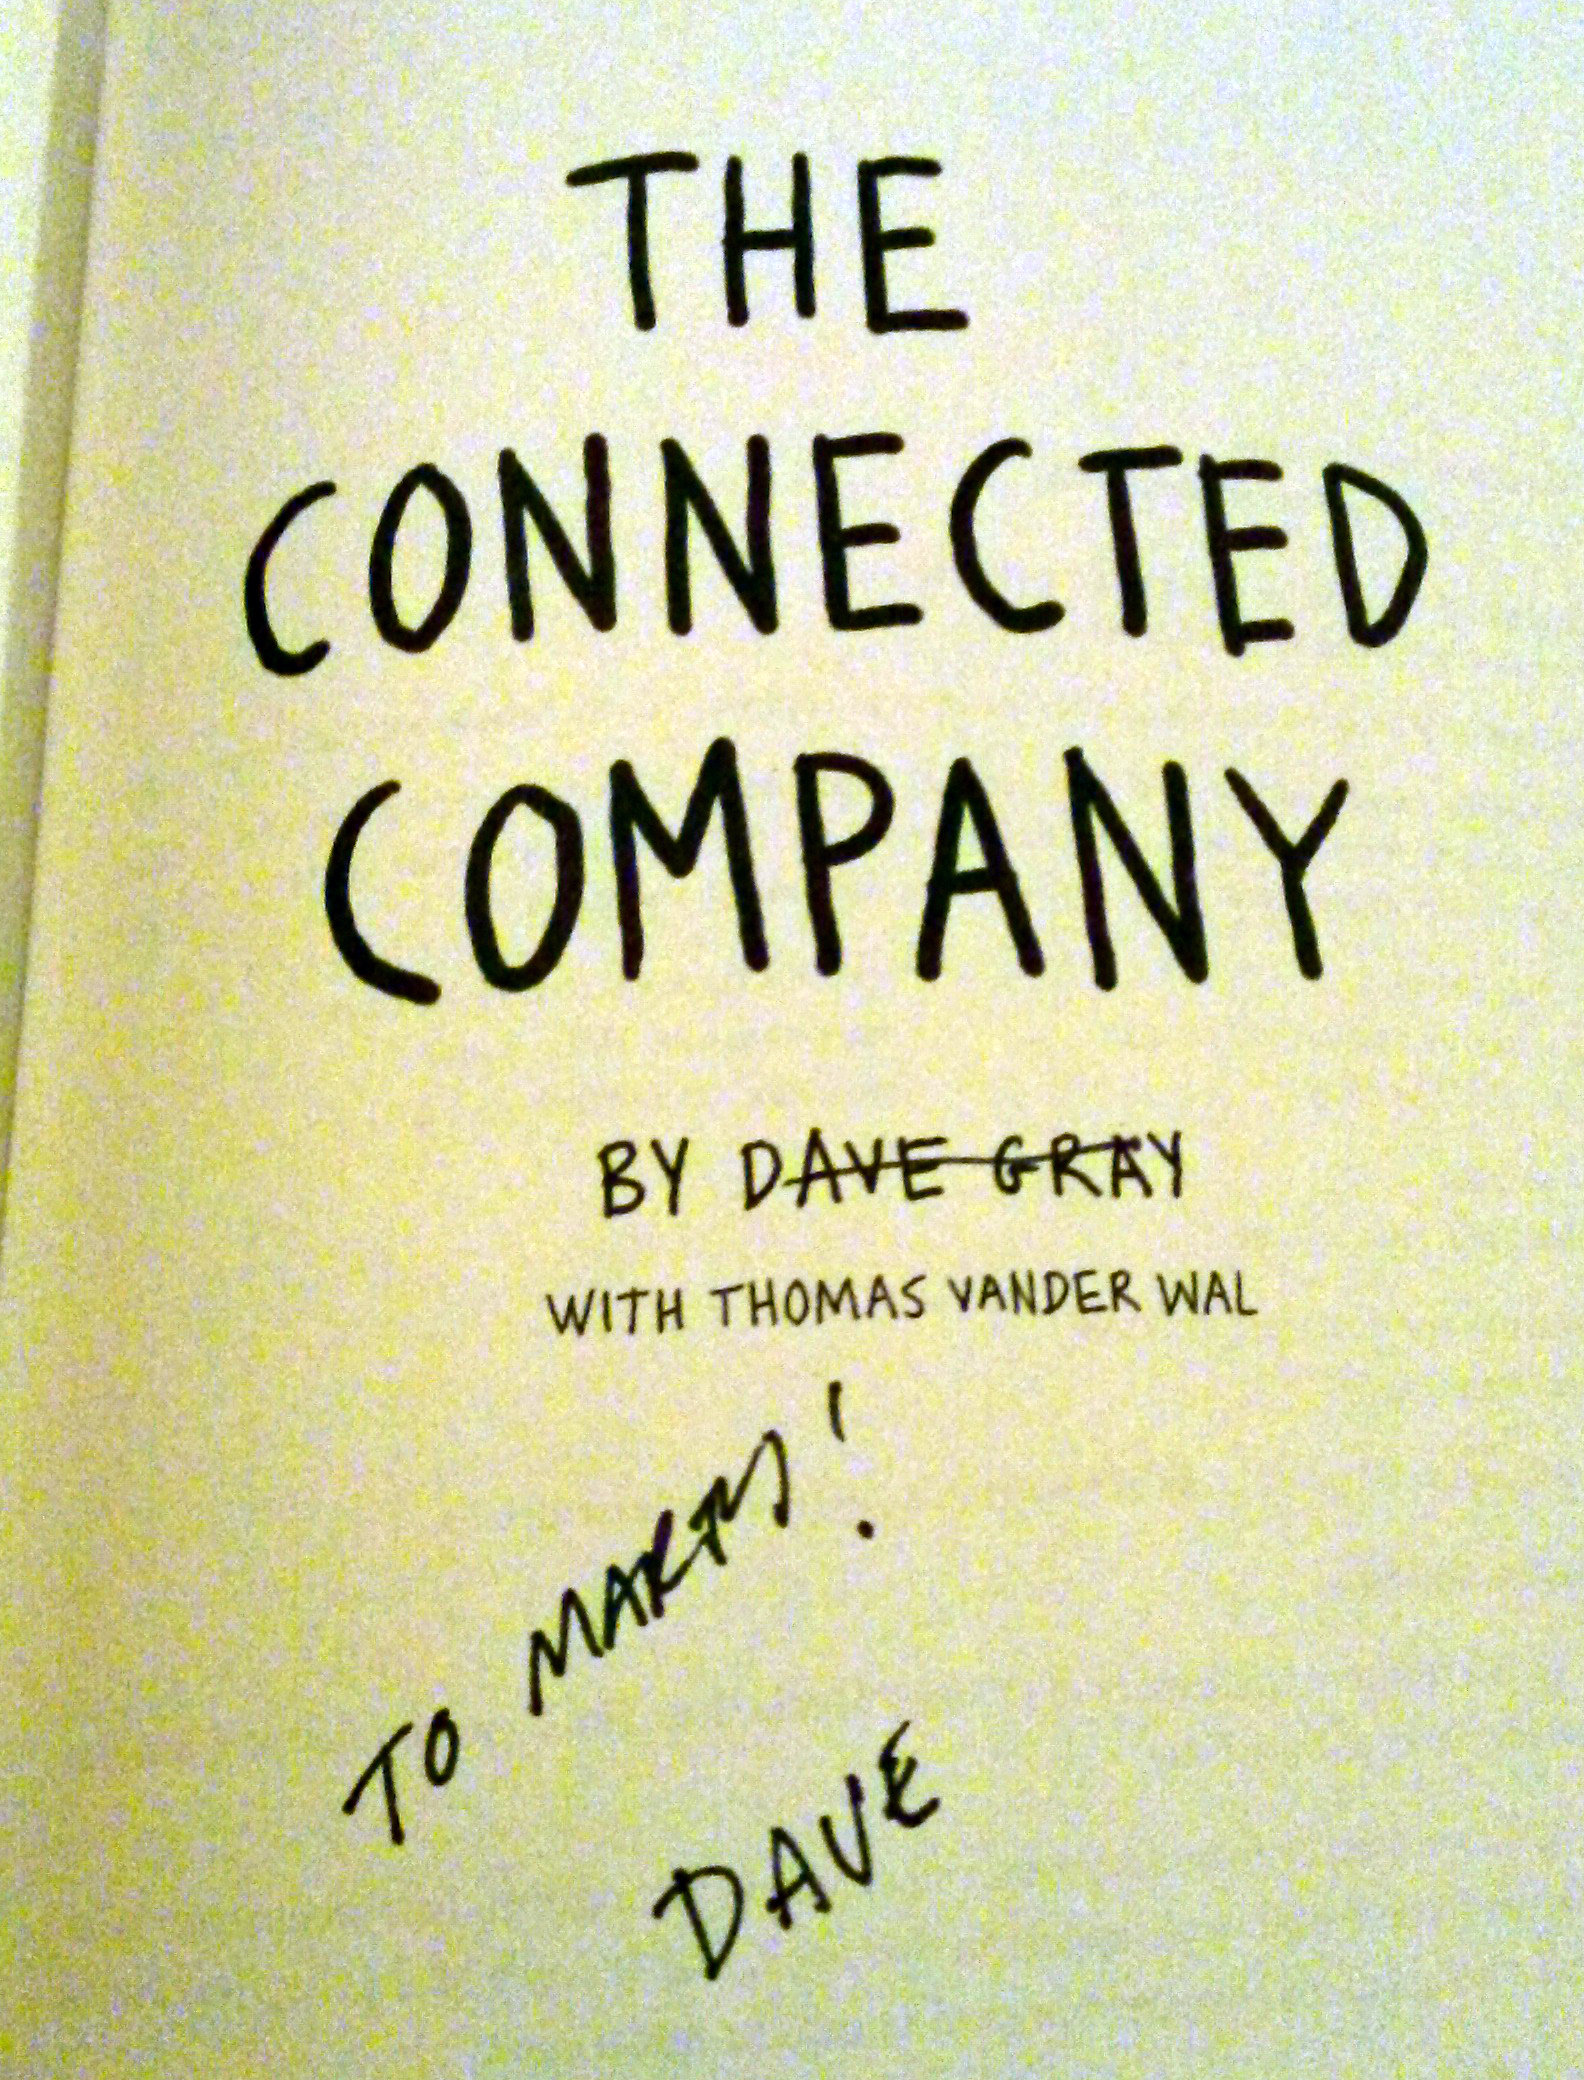 Creativity Central - Creativity Central - Get Connected: Dave Gray and Connected Company